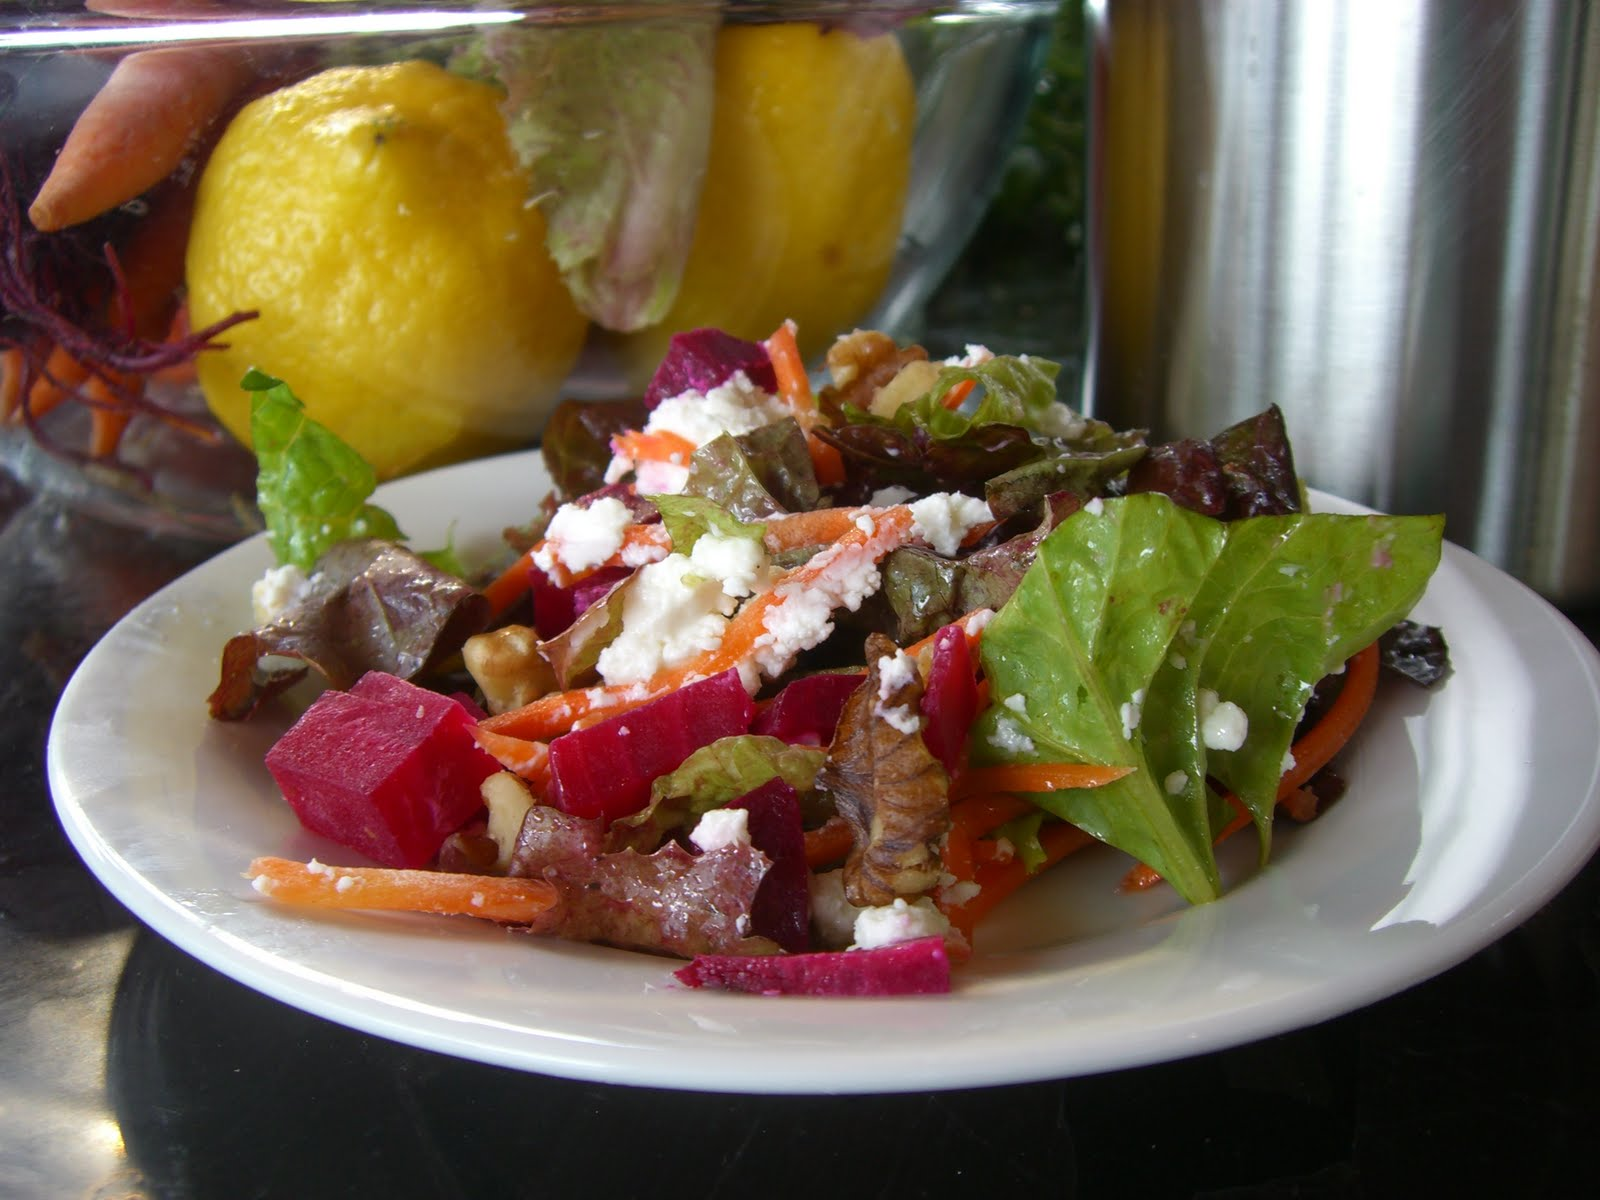 Chef Garden: Plant To Plate: Garden Greens Salad With Beets And Goat Cheese